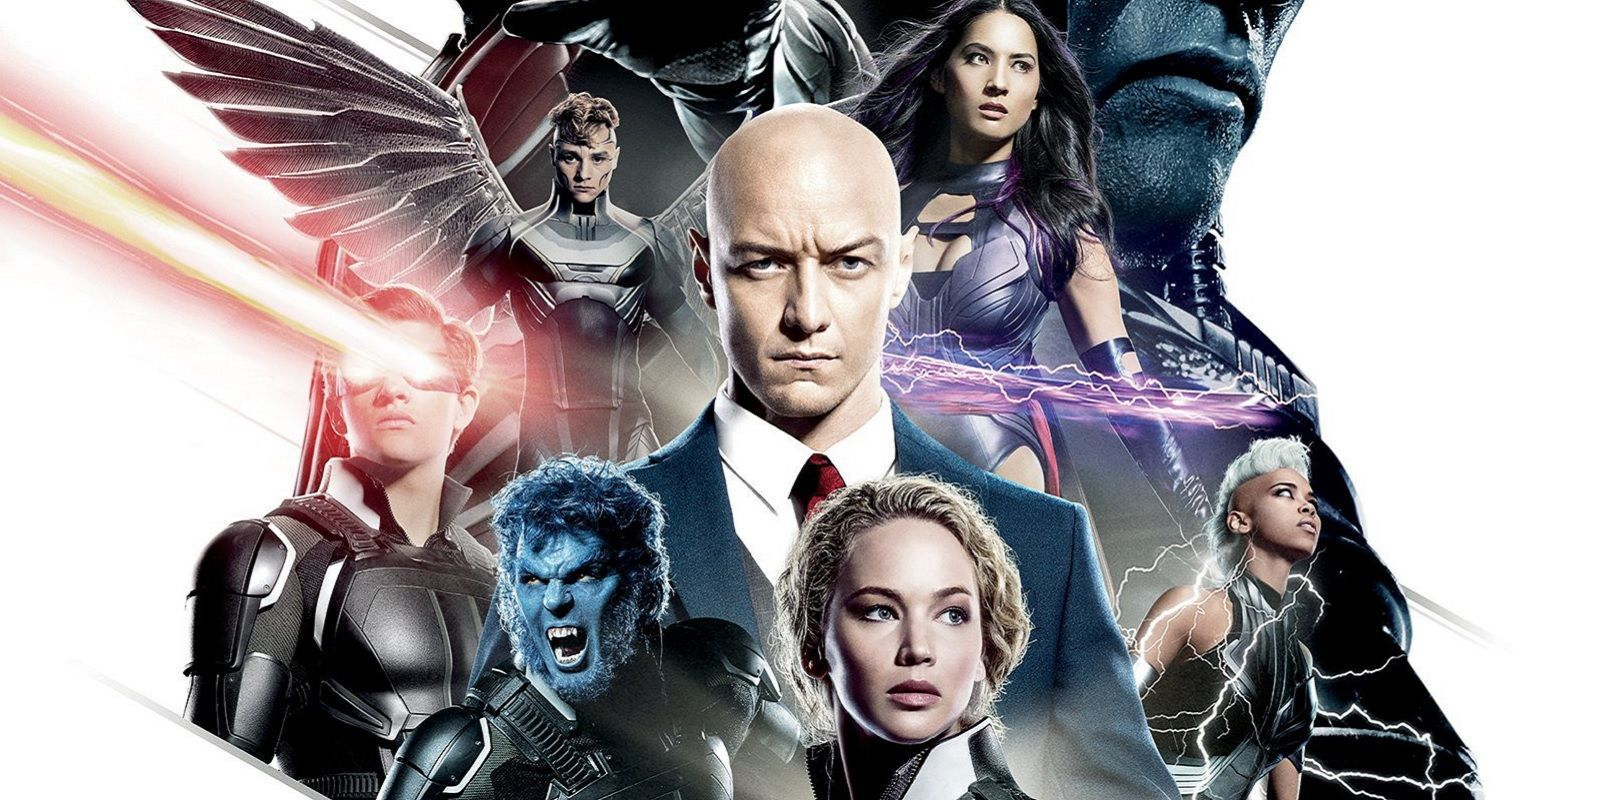 Hd X Men Apocalypse Wallpapers: X-Men Apocalypse: How It Should Have Ended